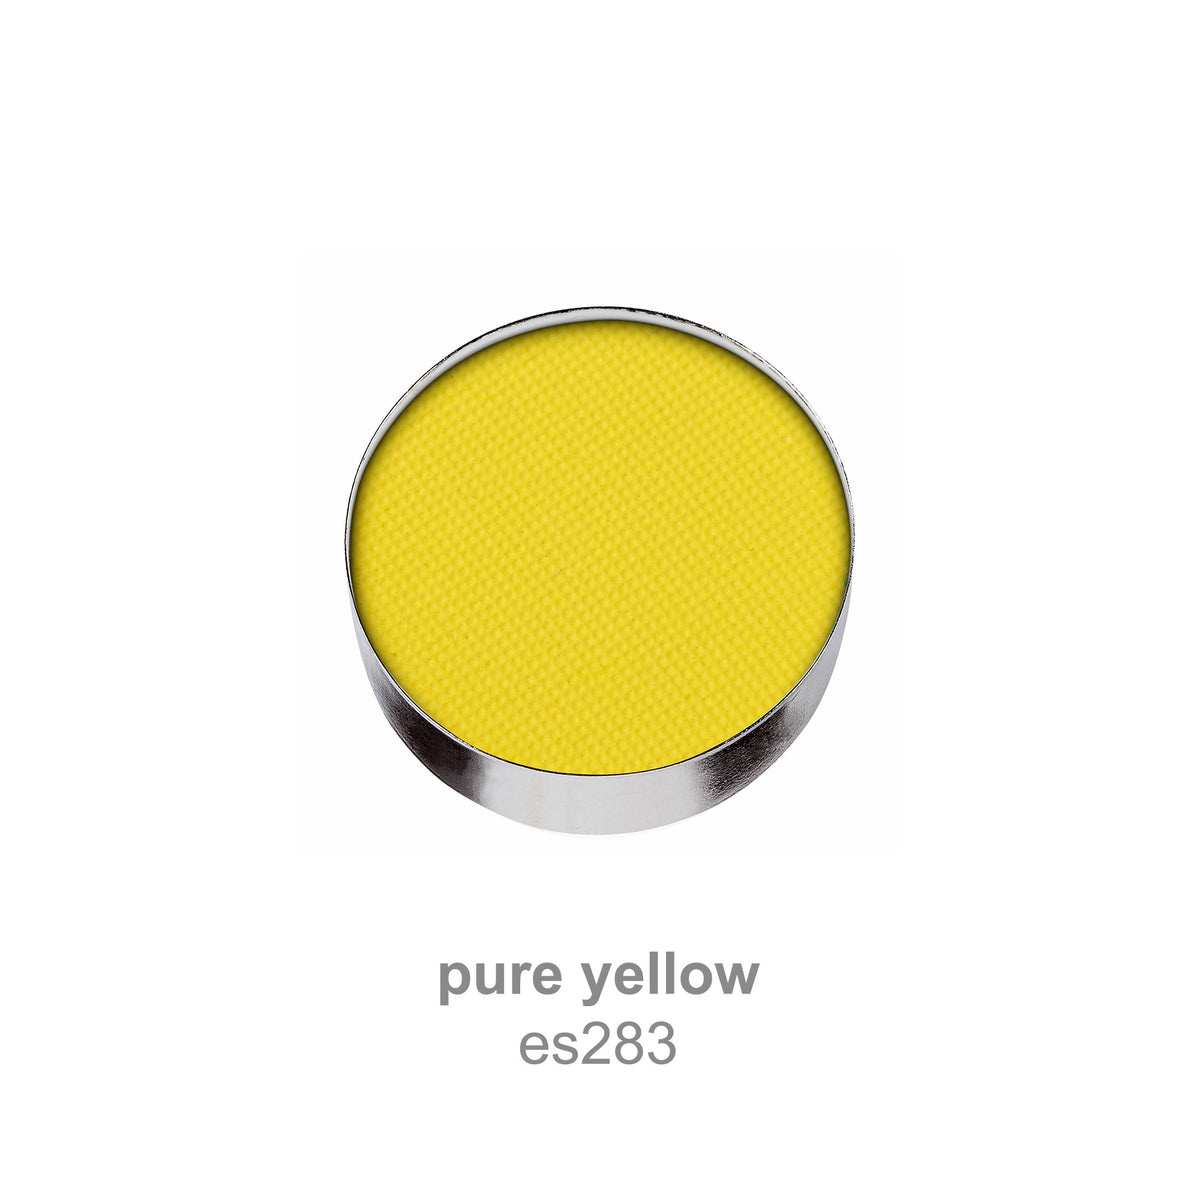 pure yellow (es283)